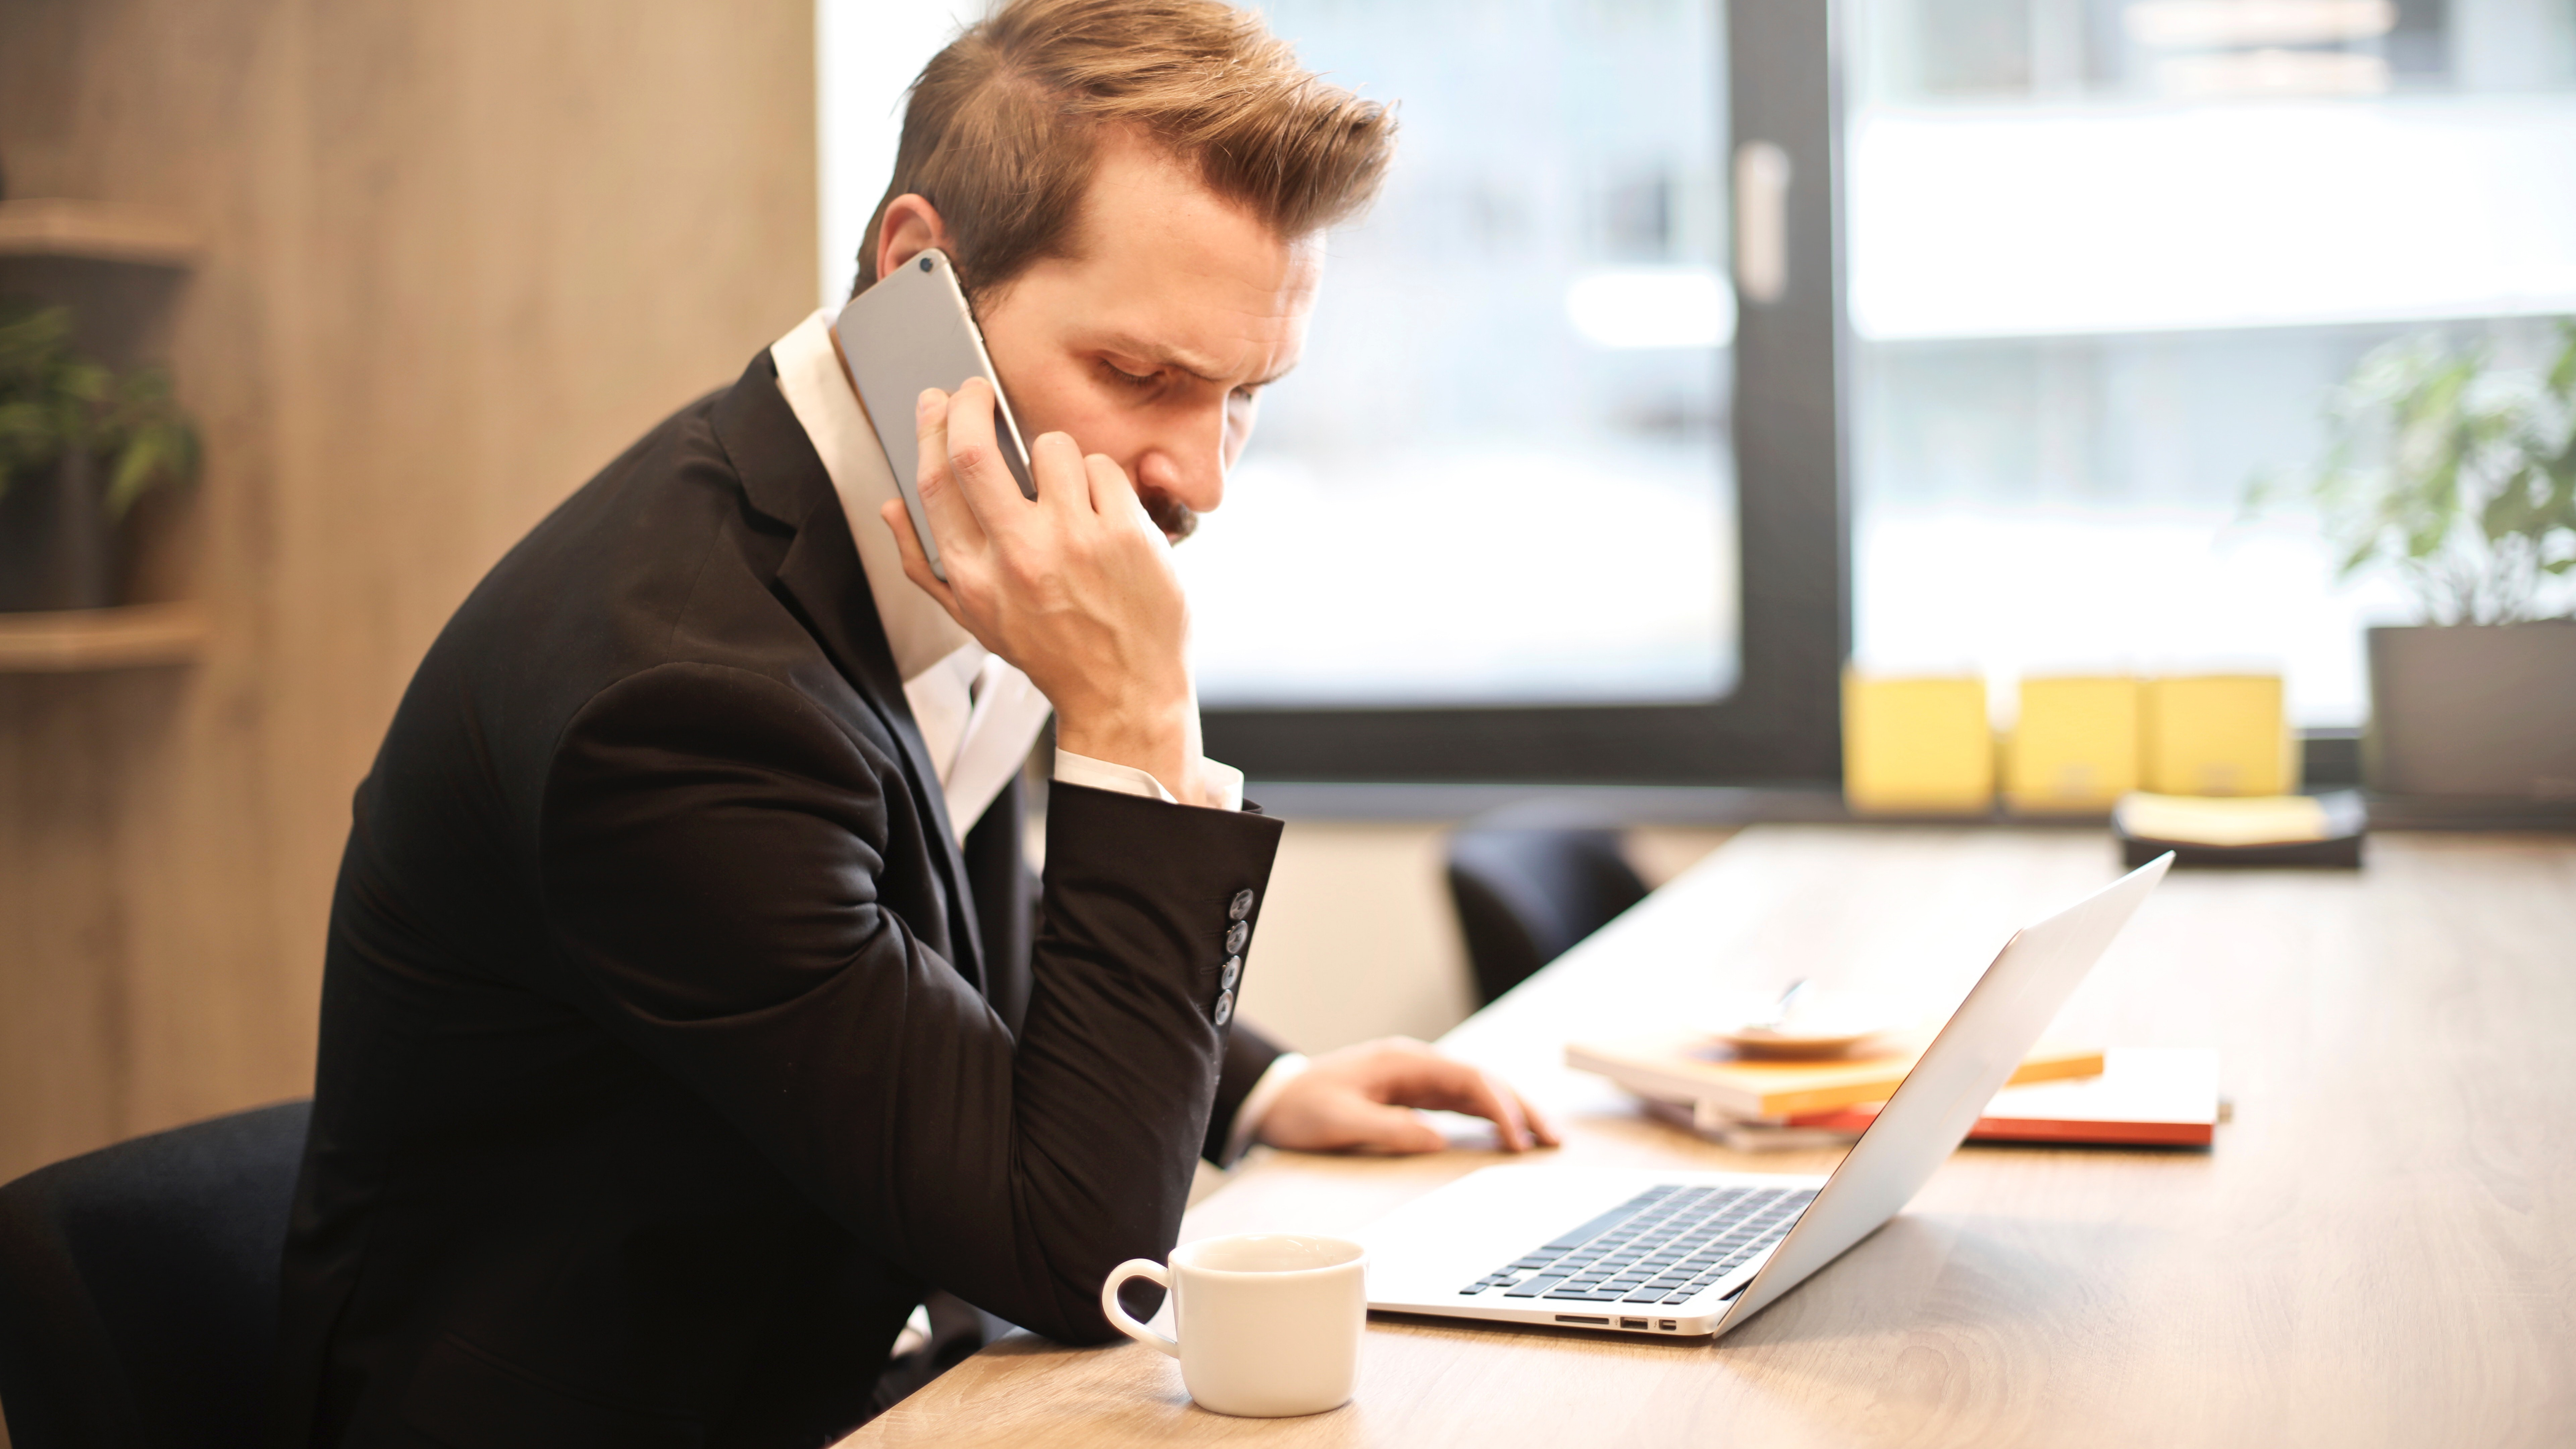 Skip the cold calling